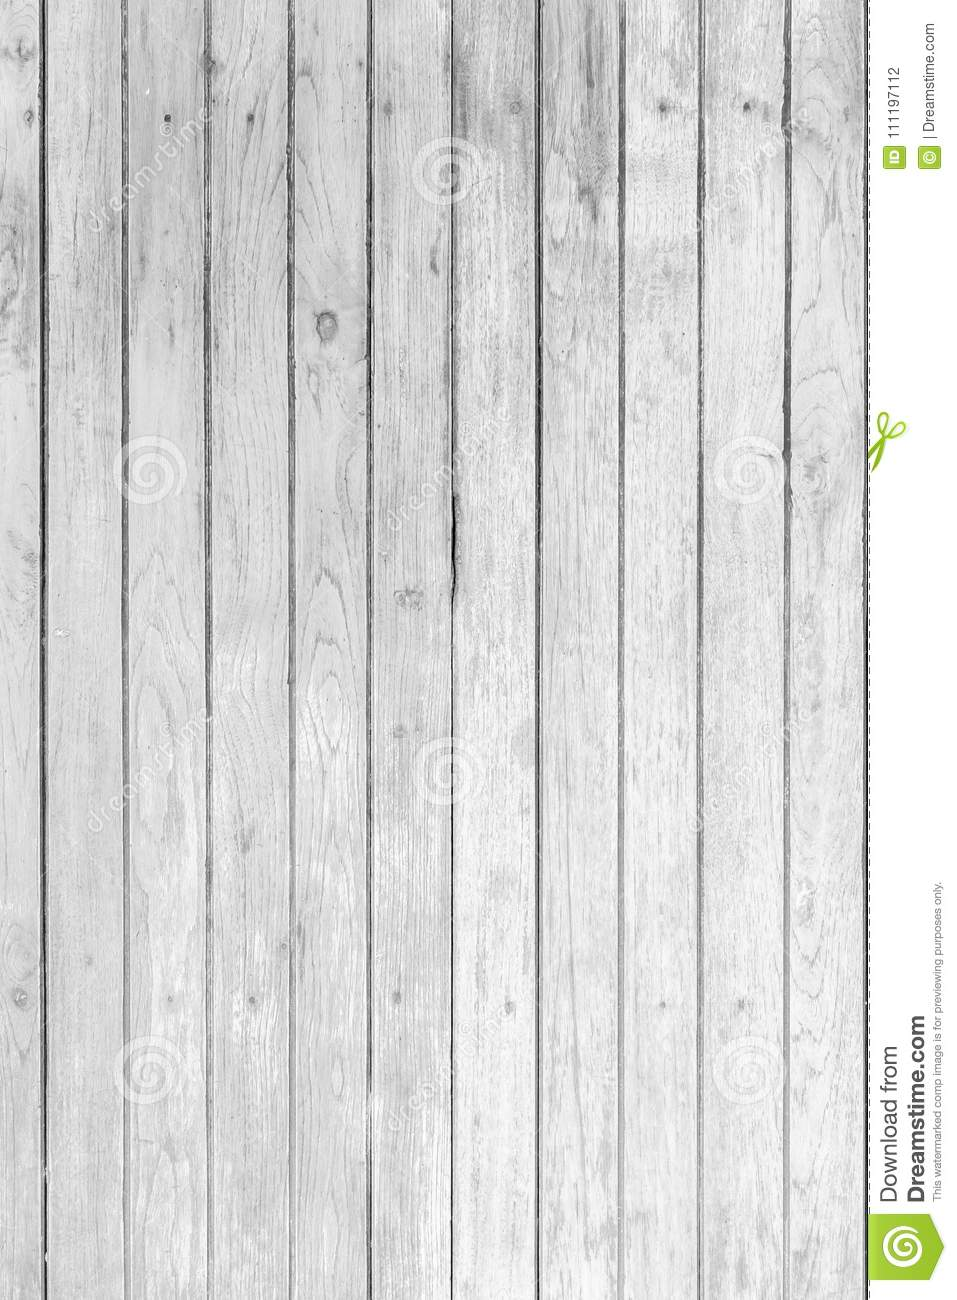 Download Old Vintage White Wood Background Texture Seamless Floor T Stock Photo